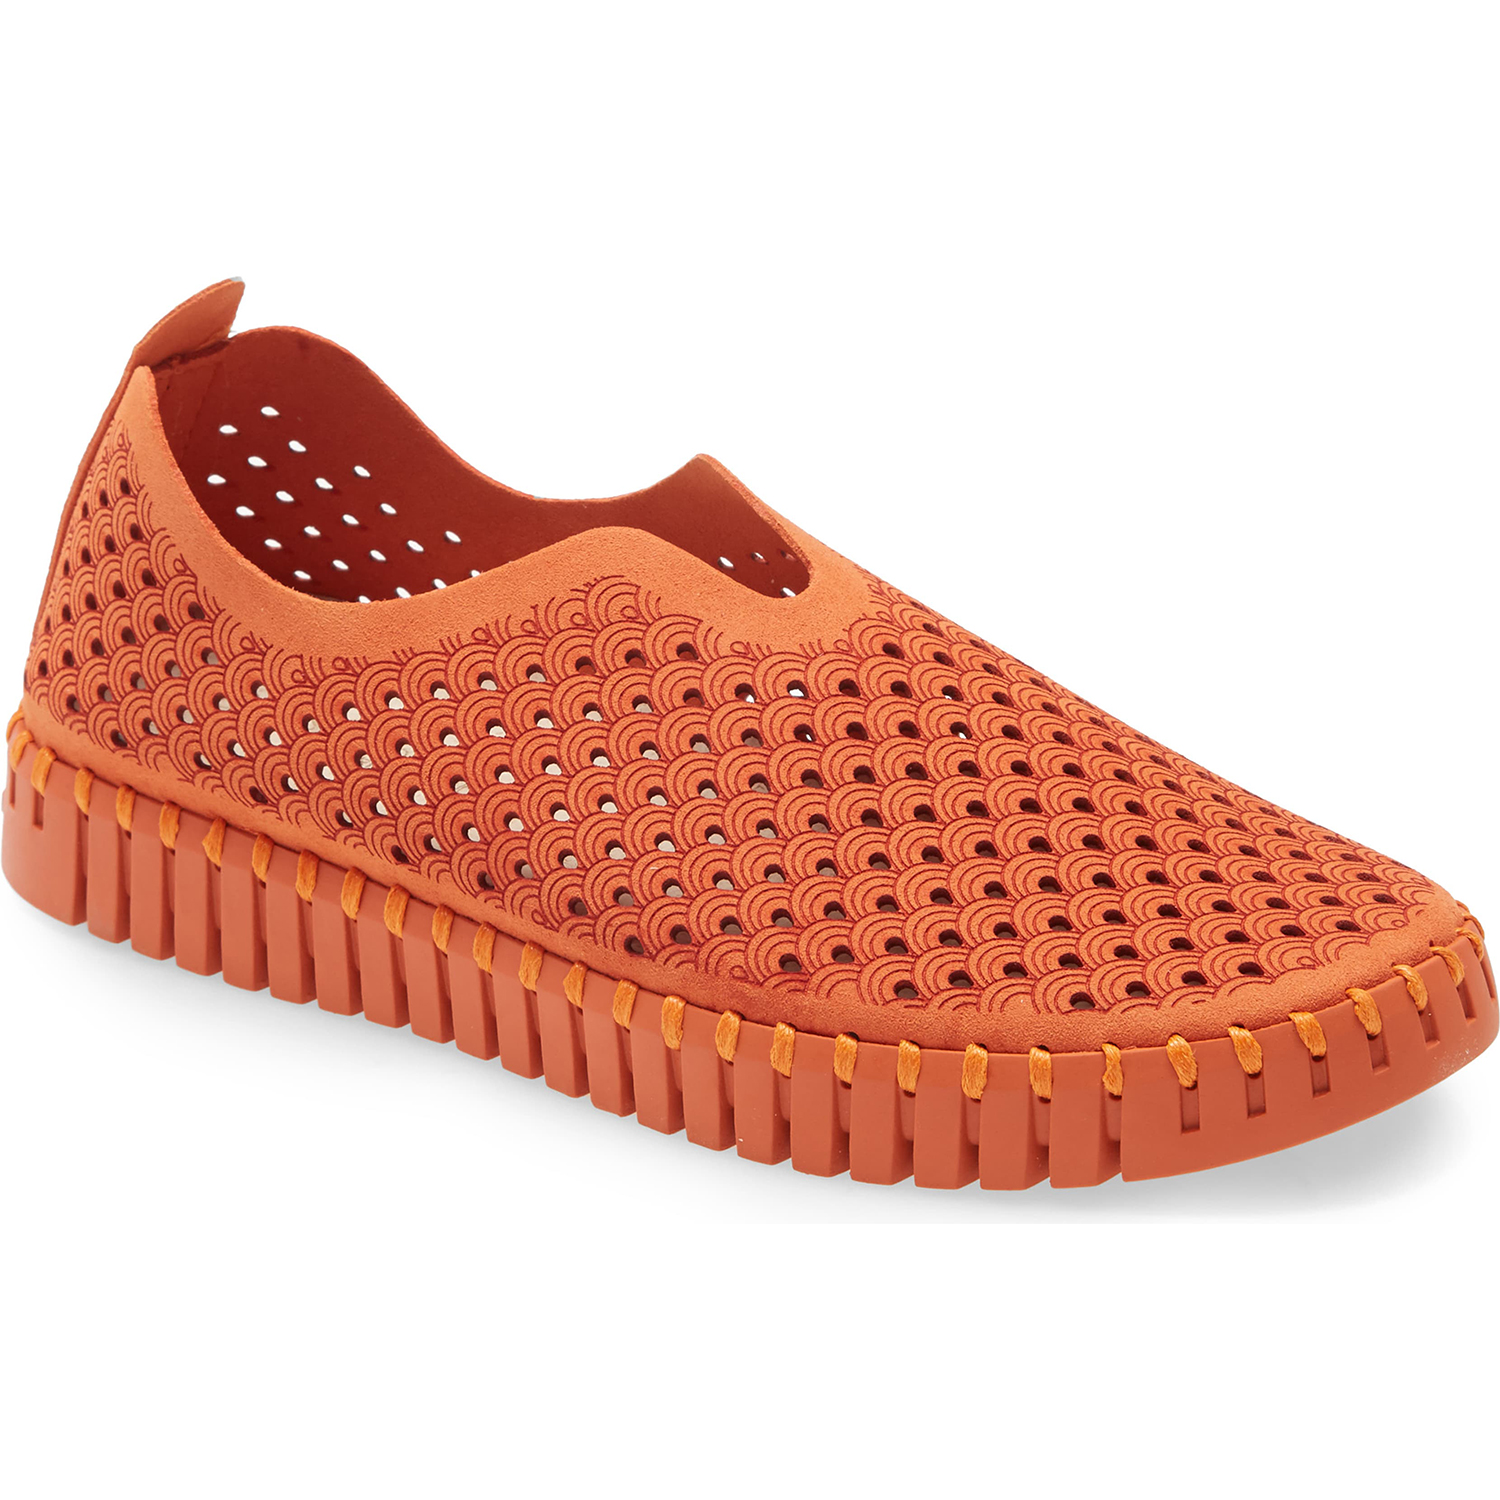 Tulip 139 Perforated Slip-On Sneaker ILSE JACOBSEN